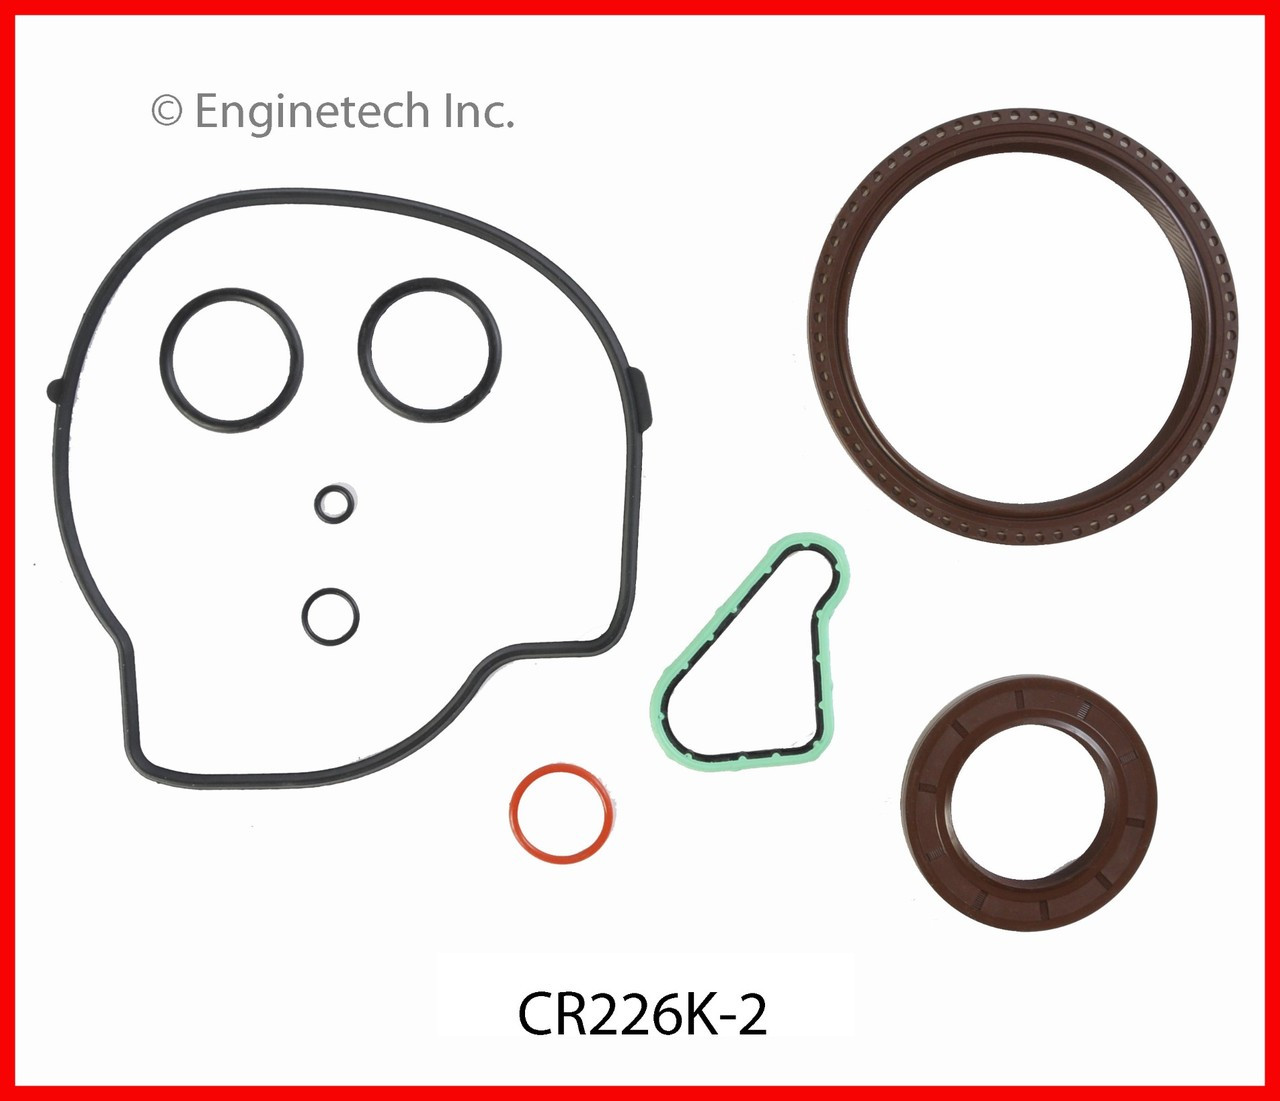 2006 mitsubishi raider 3 7l engine gasket set cr226k 2 14 [ 1280 x 1101 Pixel ]